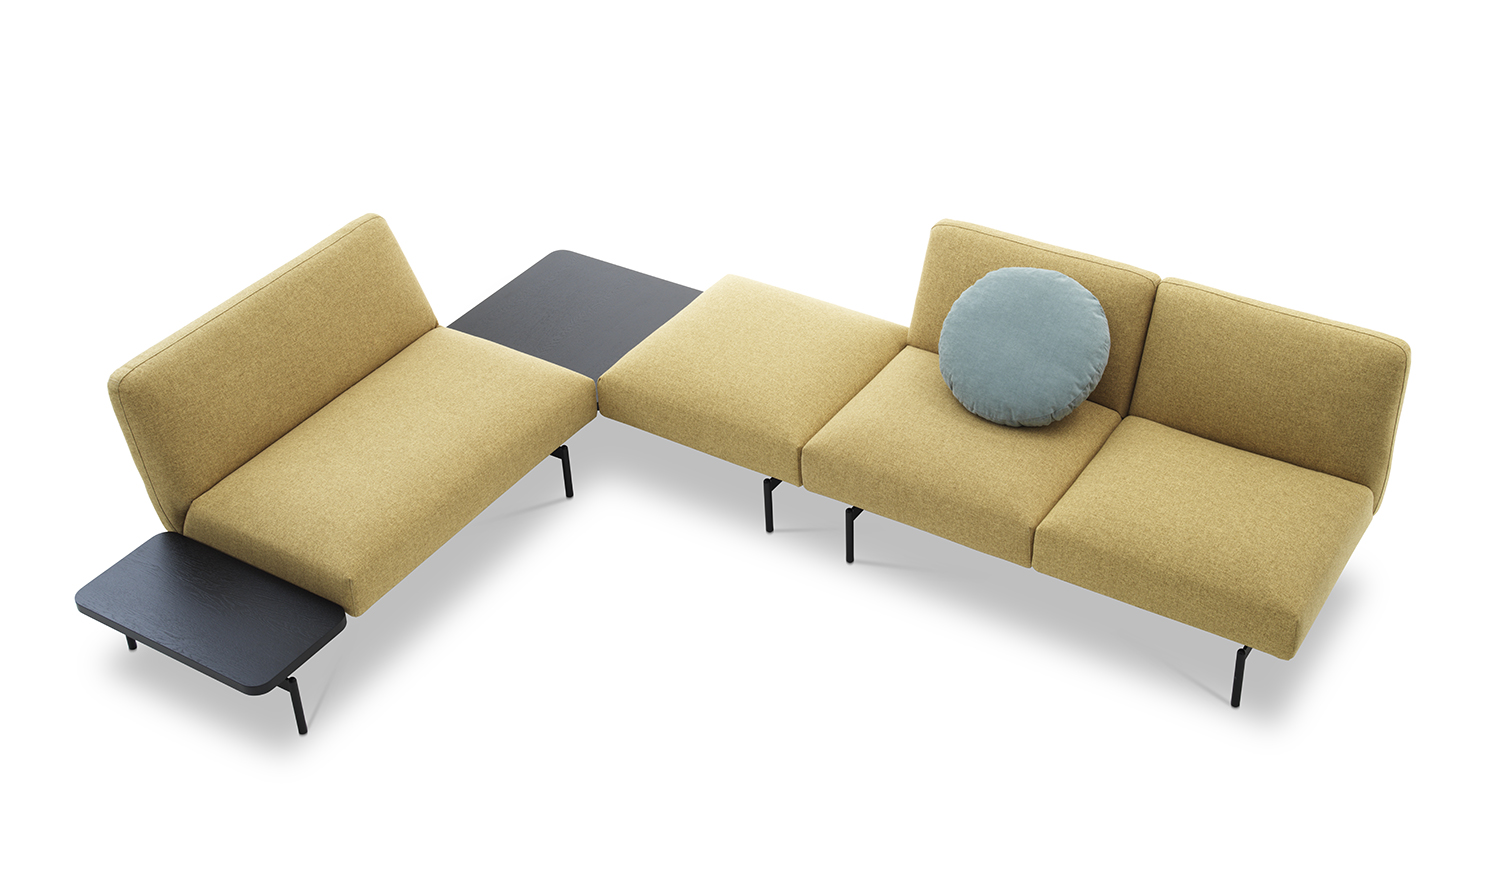 Rendez-Vous Modular Sofa - Rendez-vous is the new seating system envisaged not only for the home environment but also for public spaces. The aim of the project is to allow upmost flexibility in configurations with very few elements. The foundation is a metallic black painted structure on which various elements are fixed and can be moved according to the user's preference. The result allows for seated encounters with aesthetic pleasure. Curved angles contrast with pure lines creating interiors with a strong personality. The design of the side tables, in two measurements and finishes, underlines the functional needs in places of encounters. The upholstery textile range includes the durable materials specified for use in commercial applications.  This item is available in various sizes and combinations. Please enquire for more information and prices.  Materials Structure in plywood padded with polyurethane foam per seating and for backrest. All elements are covered with velfodera coupled with polyester fiber 280gr/sqm. The shelves are in plywood with oak veneer natural or painted matte black. Basament in black painted metal and feel in black or black nickel finish. | Matter of Stuff